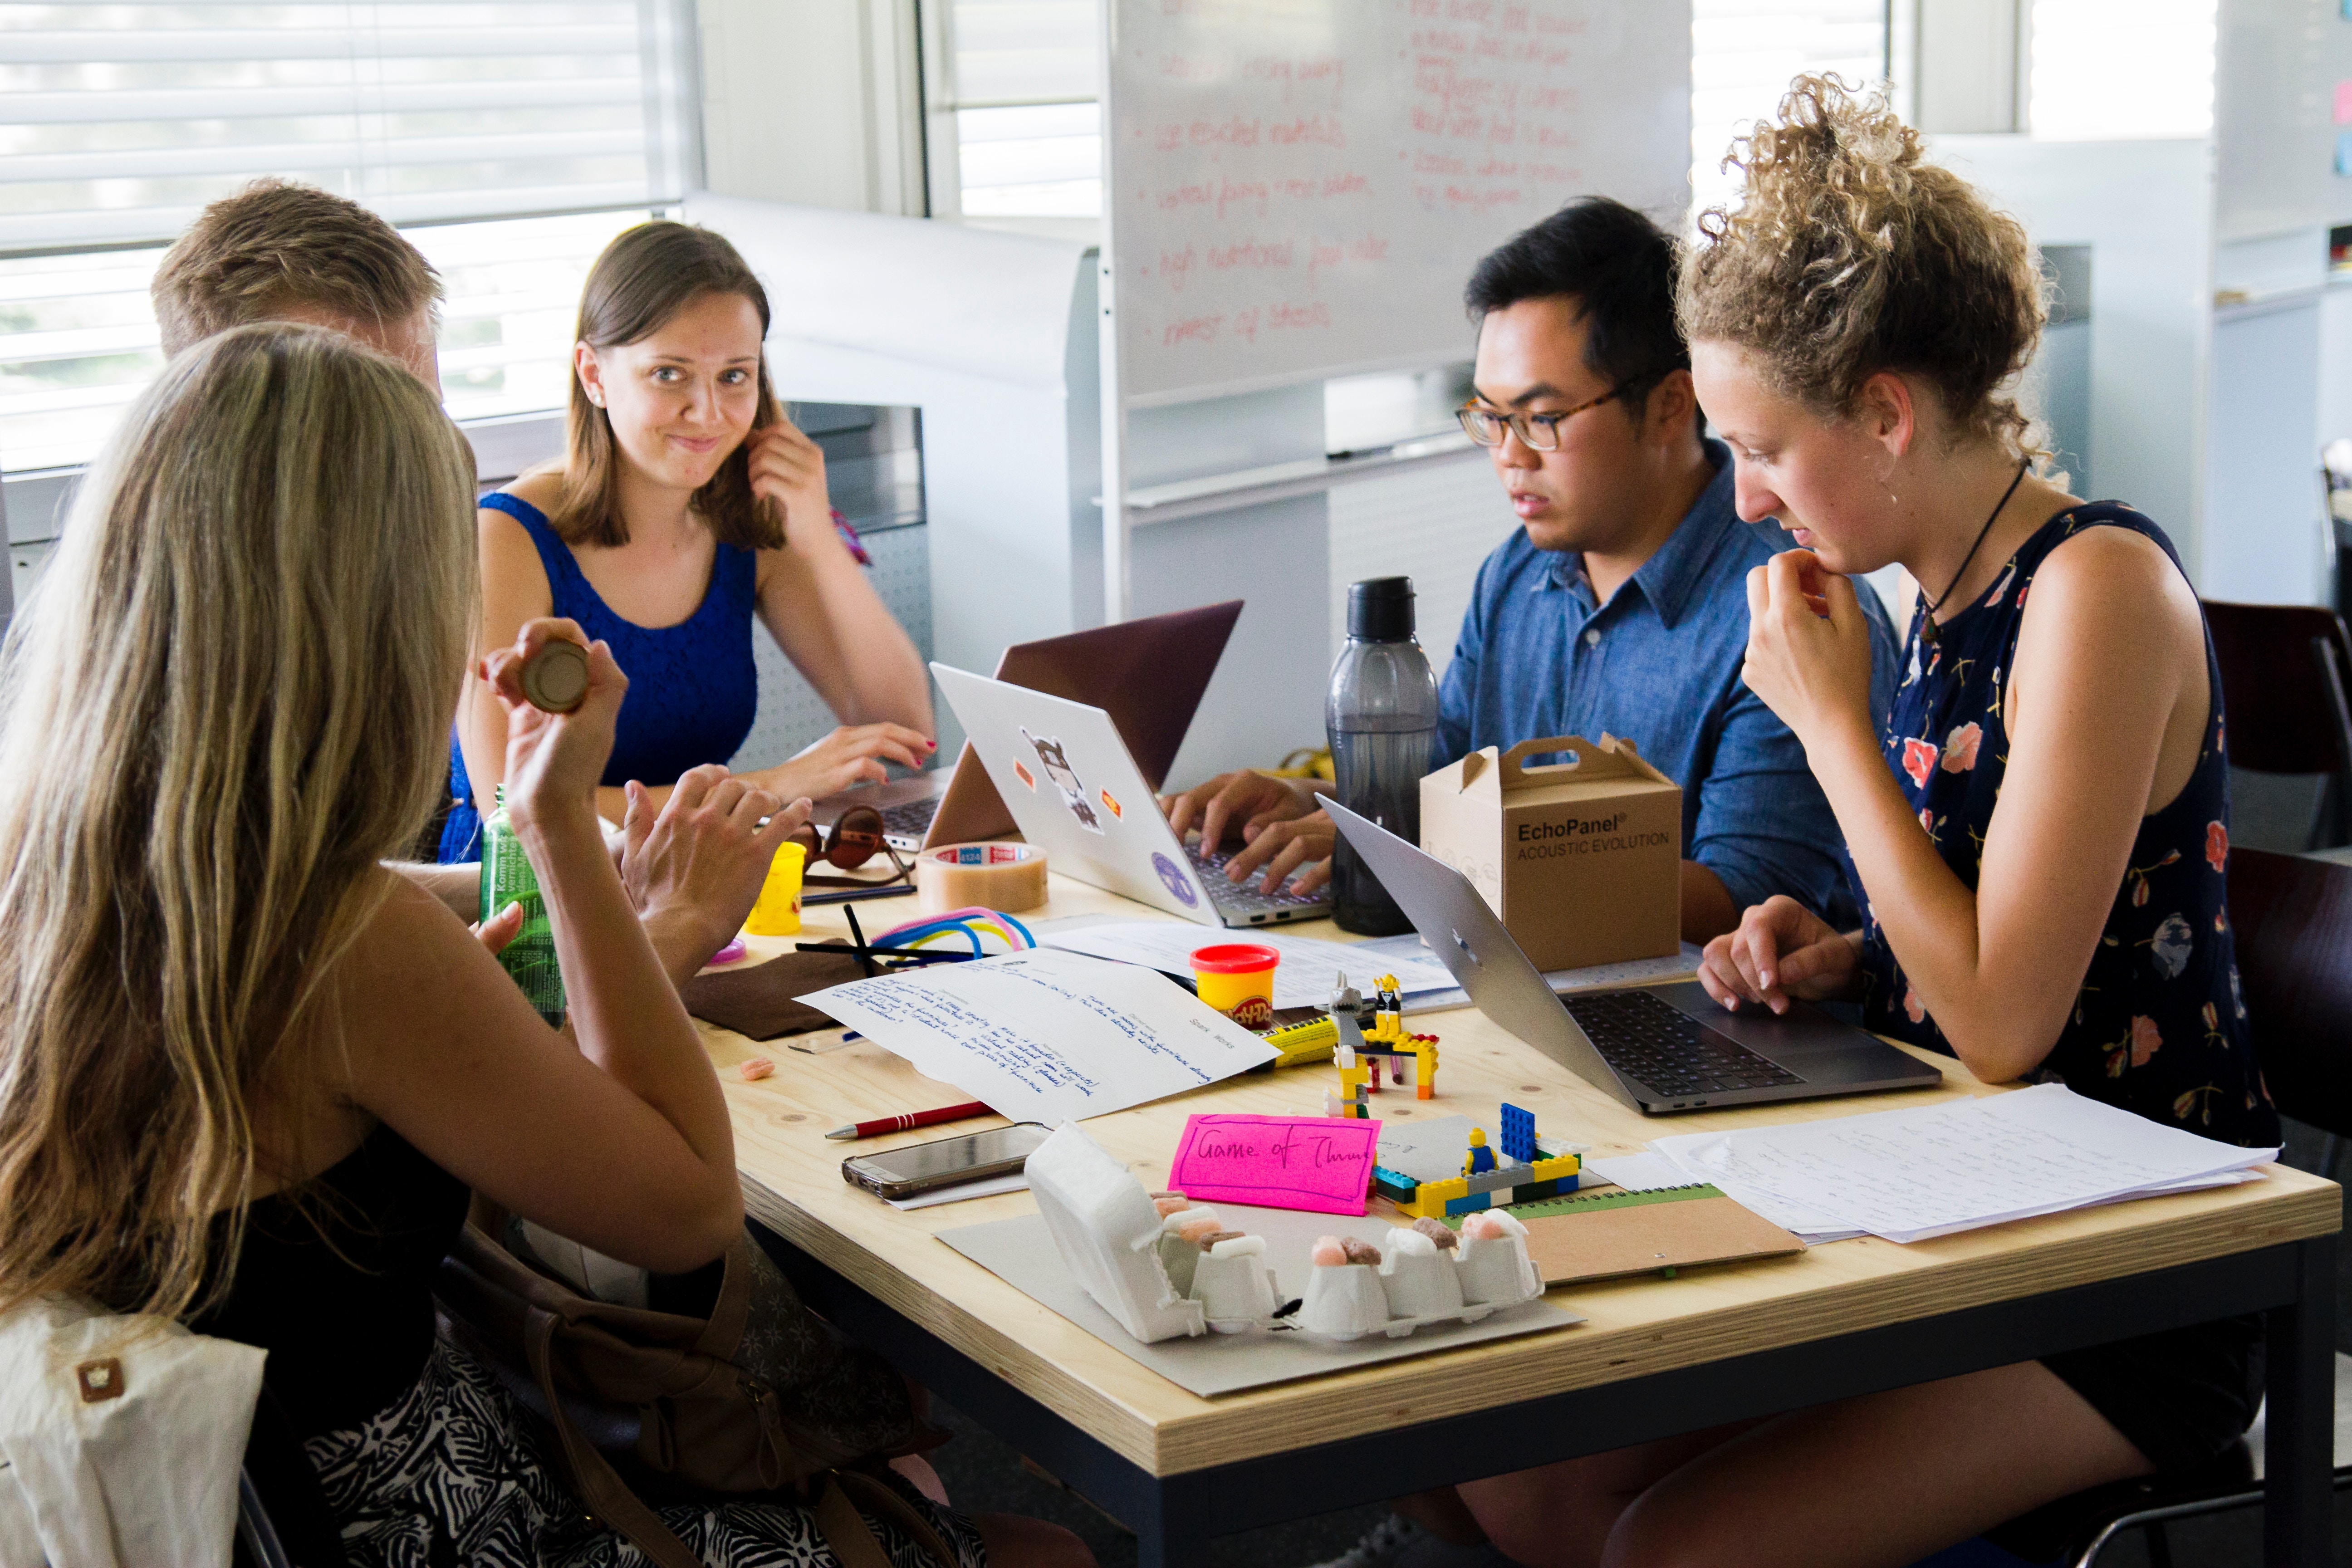 encourage collaboration in a brainstorm